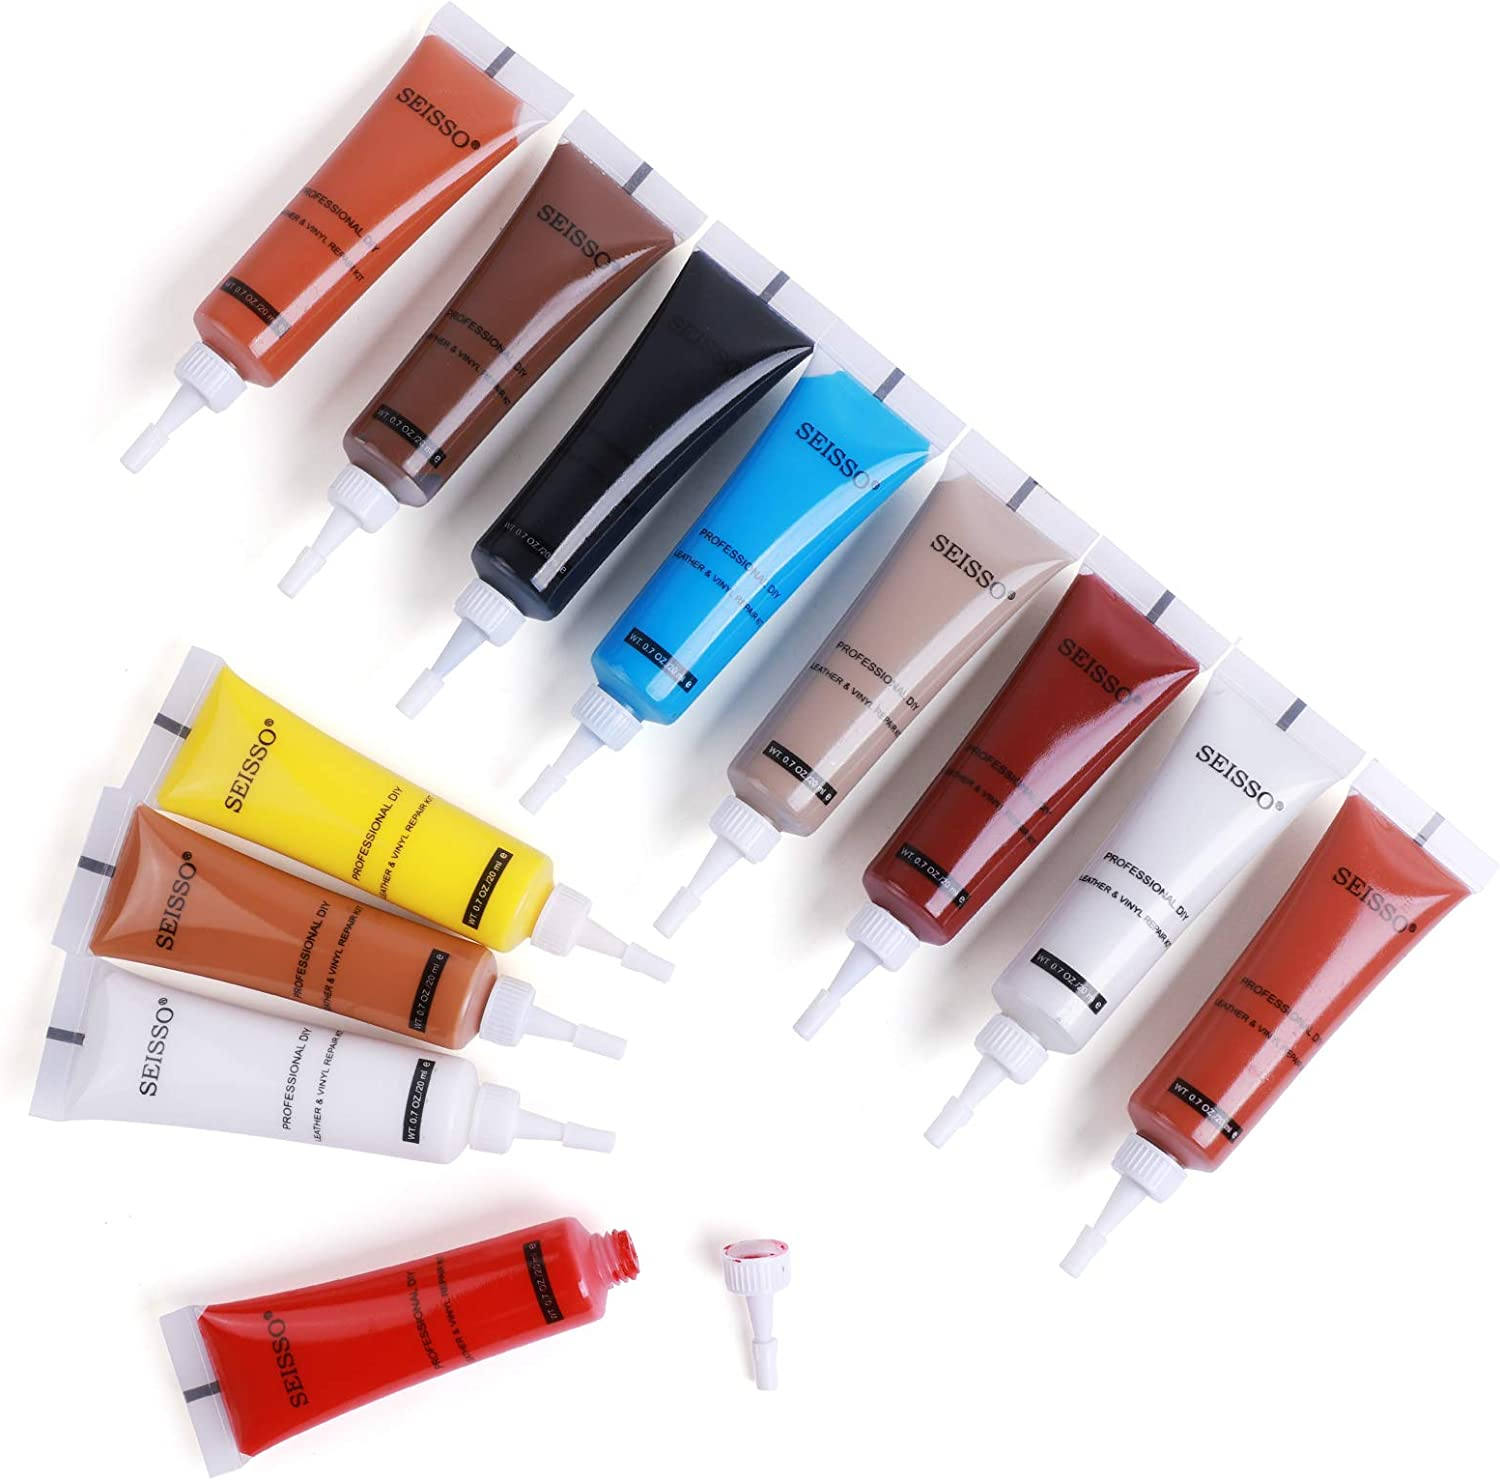 Leather Repair Kit, Vinyl Filling Repair Scratches Kit, Small Holes, Crack, Repair Furniture, Sofas, Wallets, Belts, Car Seat Cushions, 12 Colors